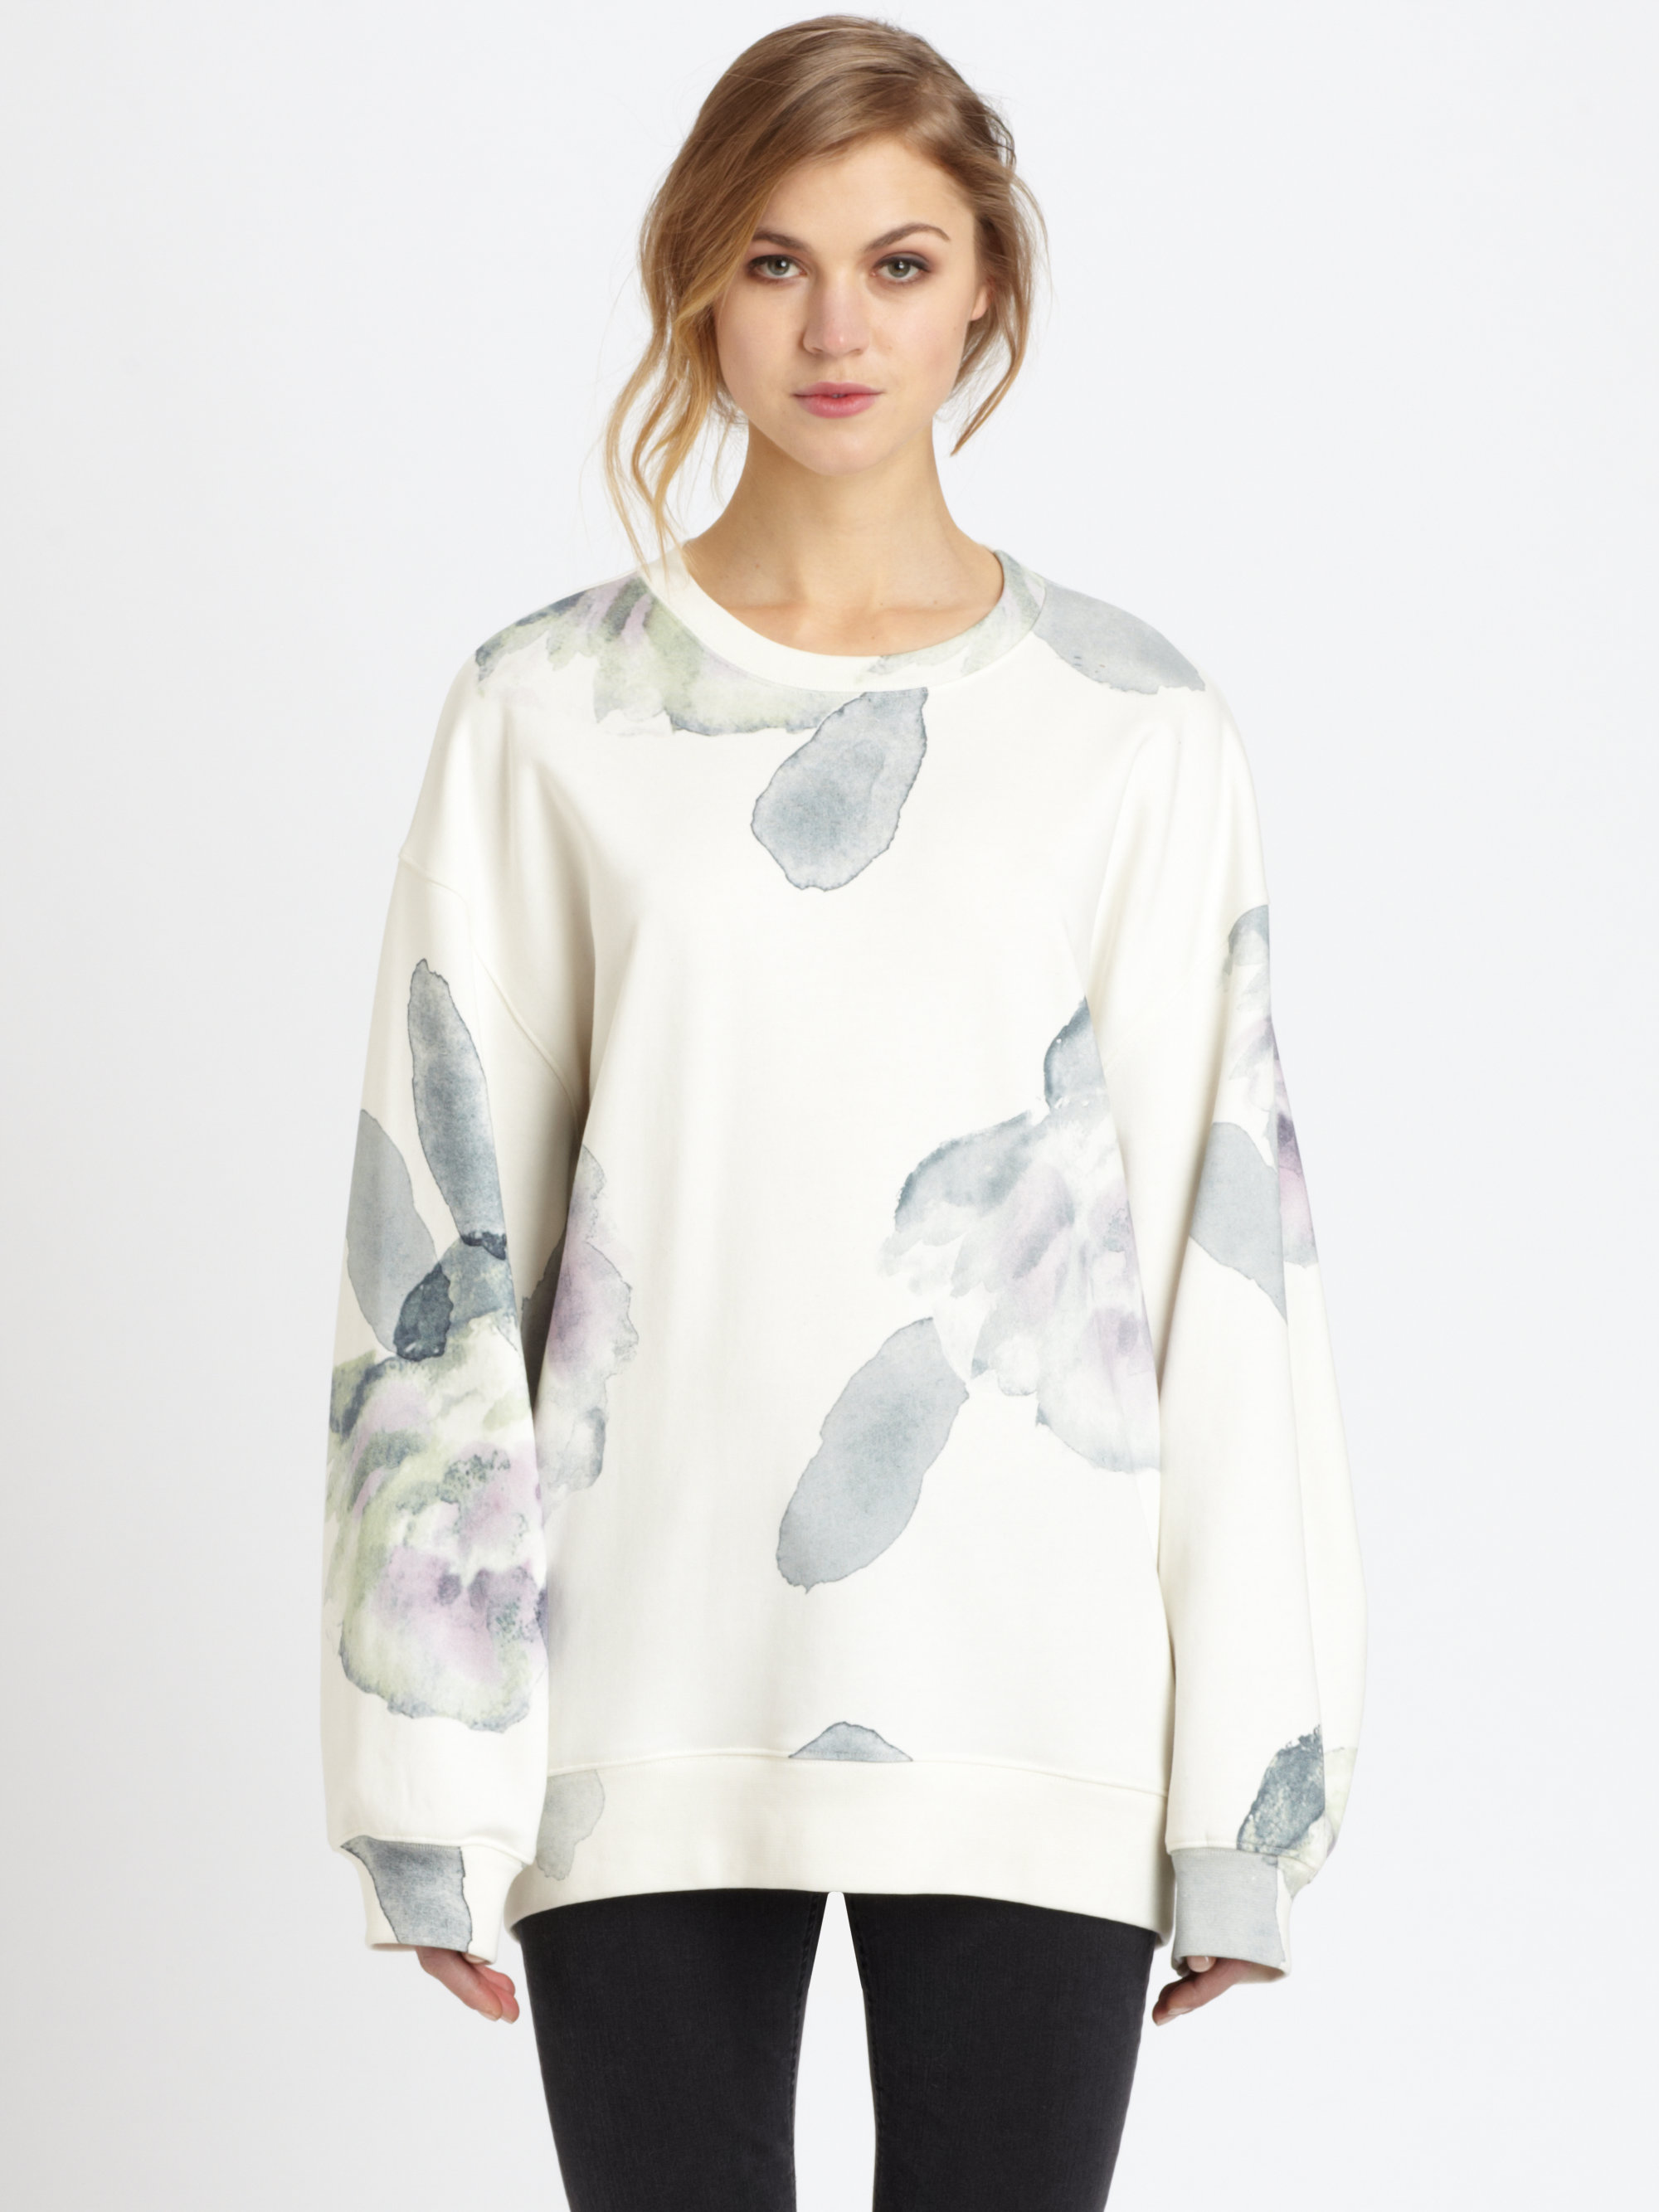 Buy Women Sweatshirts online in India at ggso.ga Select from a large variety of Sweatshirts for Women and get free shipping, cash on delivery & 15 days return on Sweatshirts shopping.